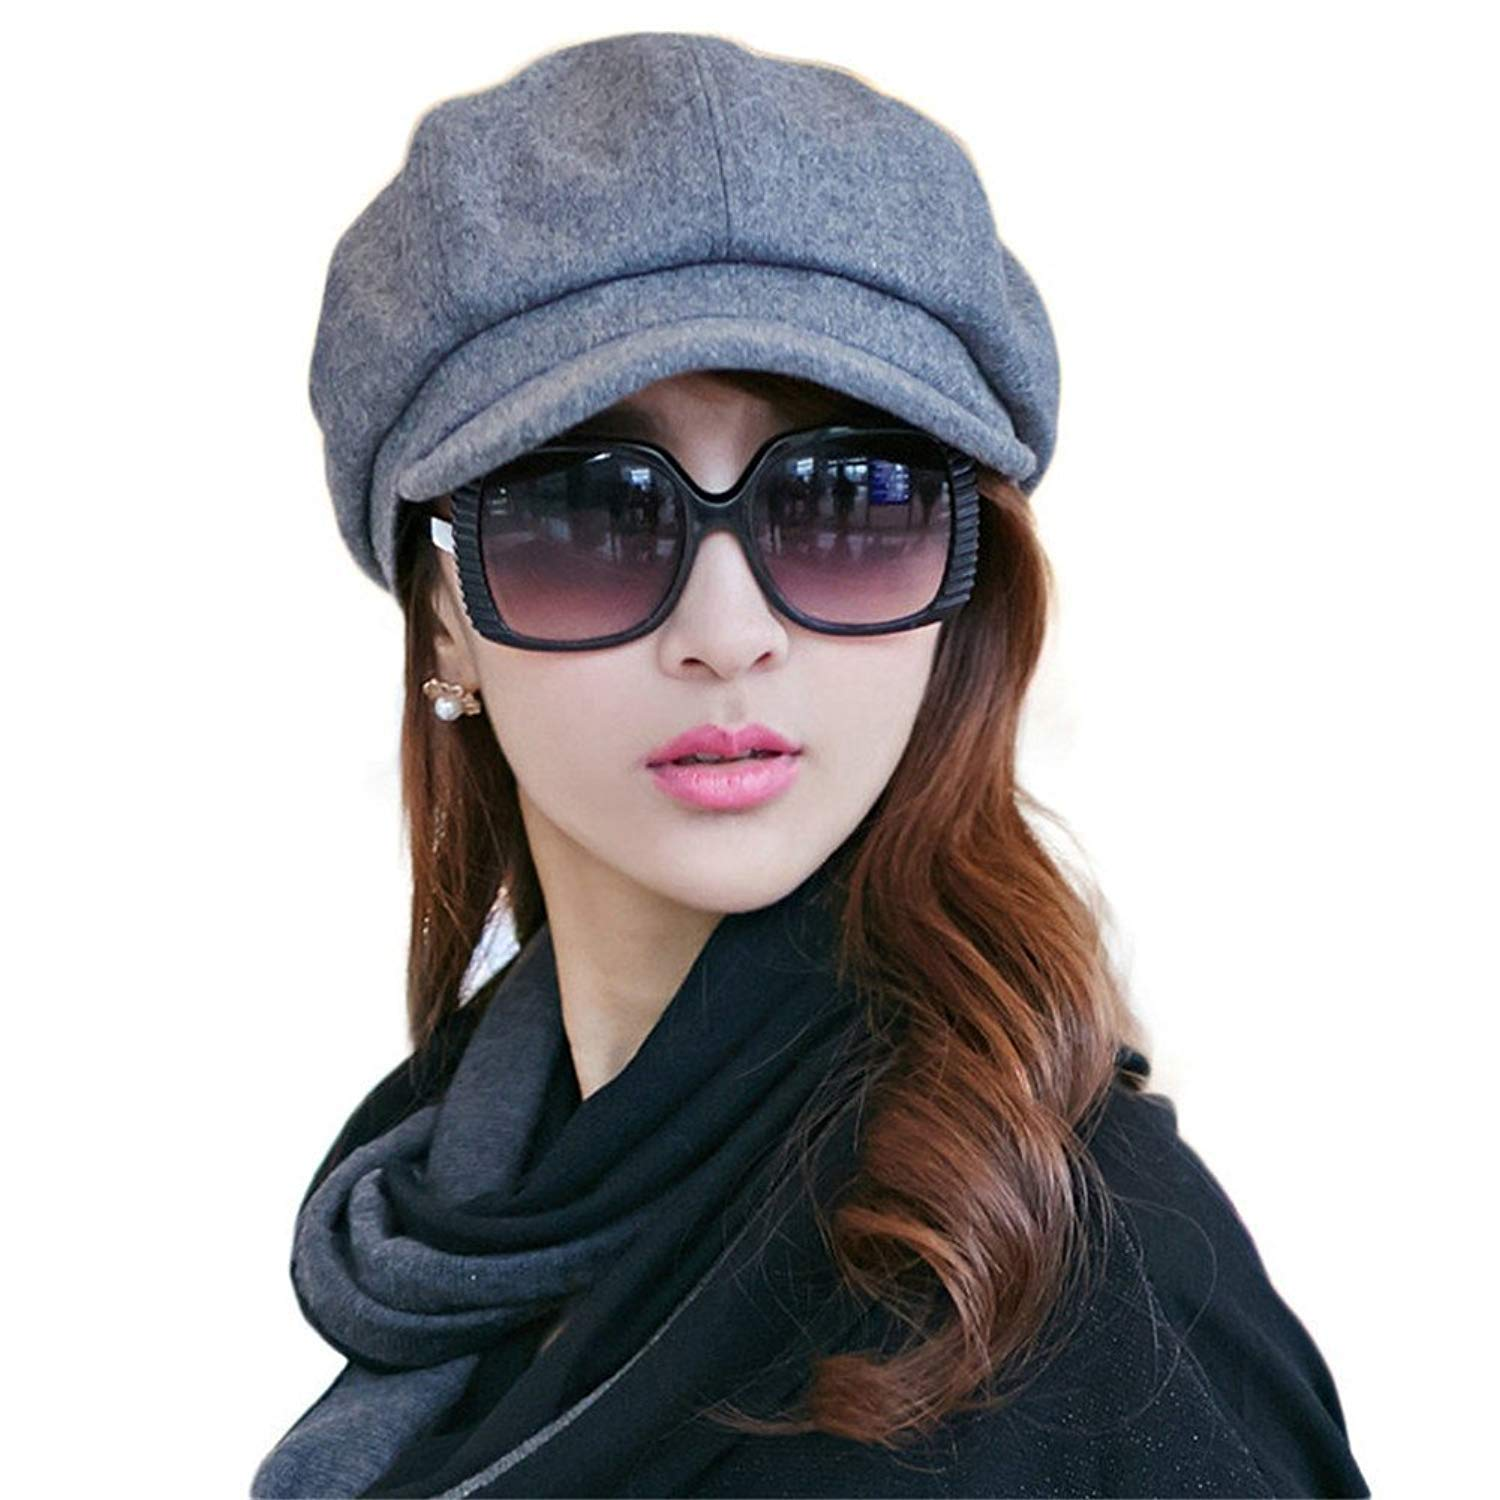 Ladies Newsboy Cabbie Beret Cap Bakerboy Visor Peaked Winter Ivy Flat Hat for Women